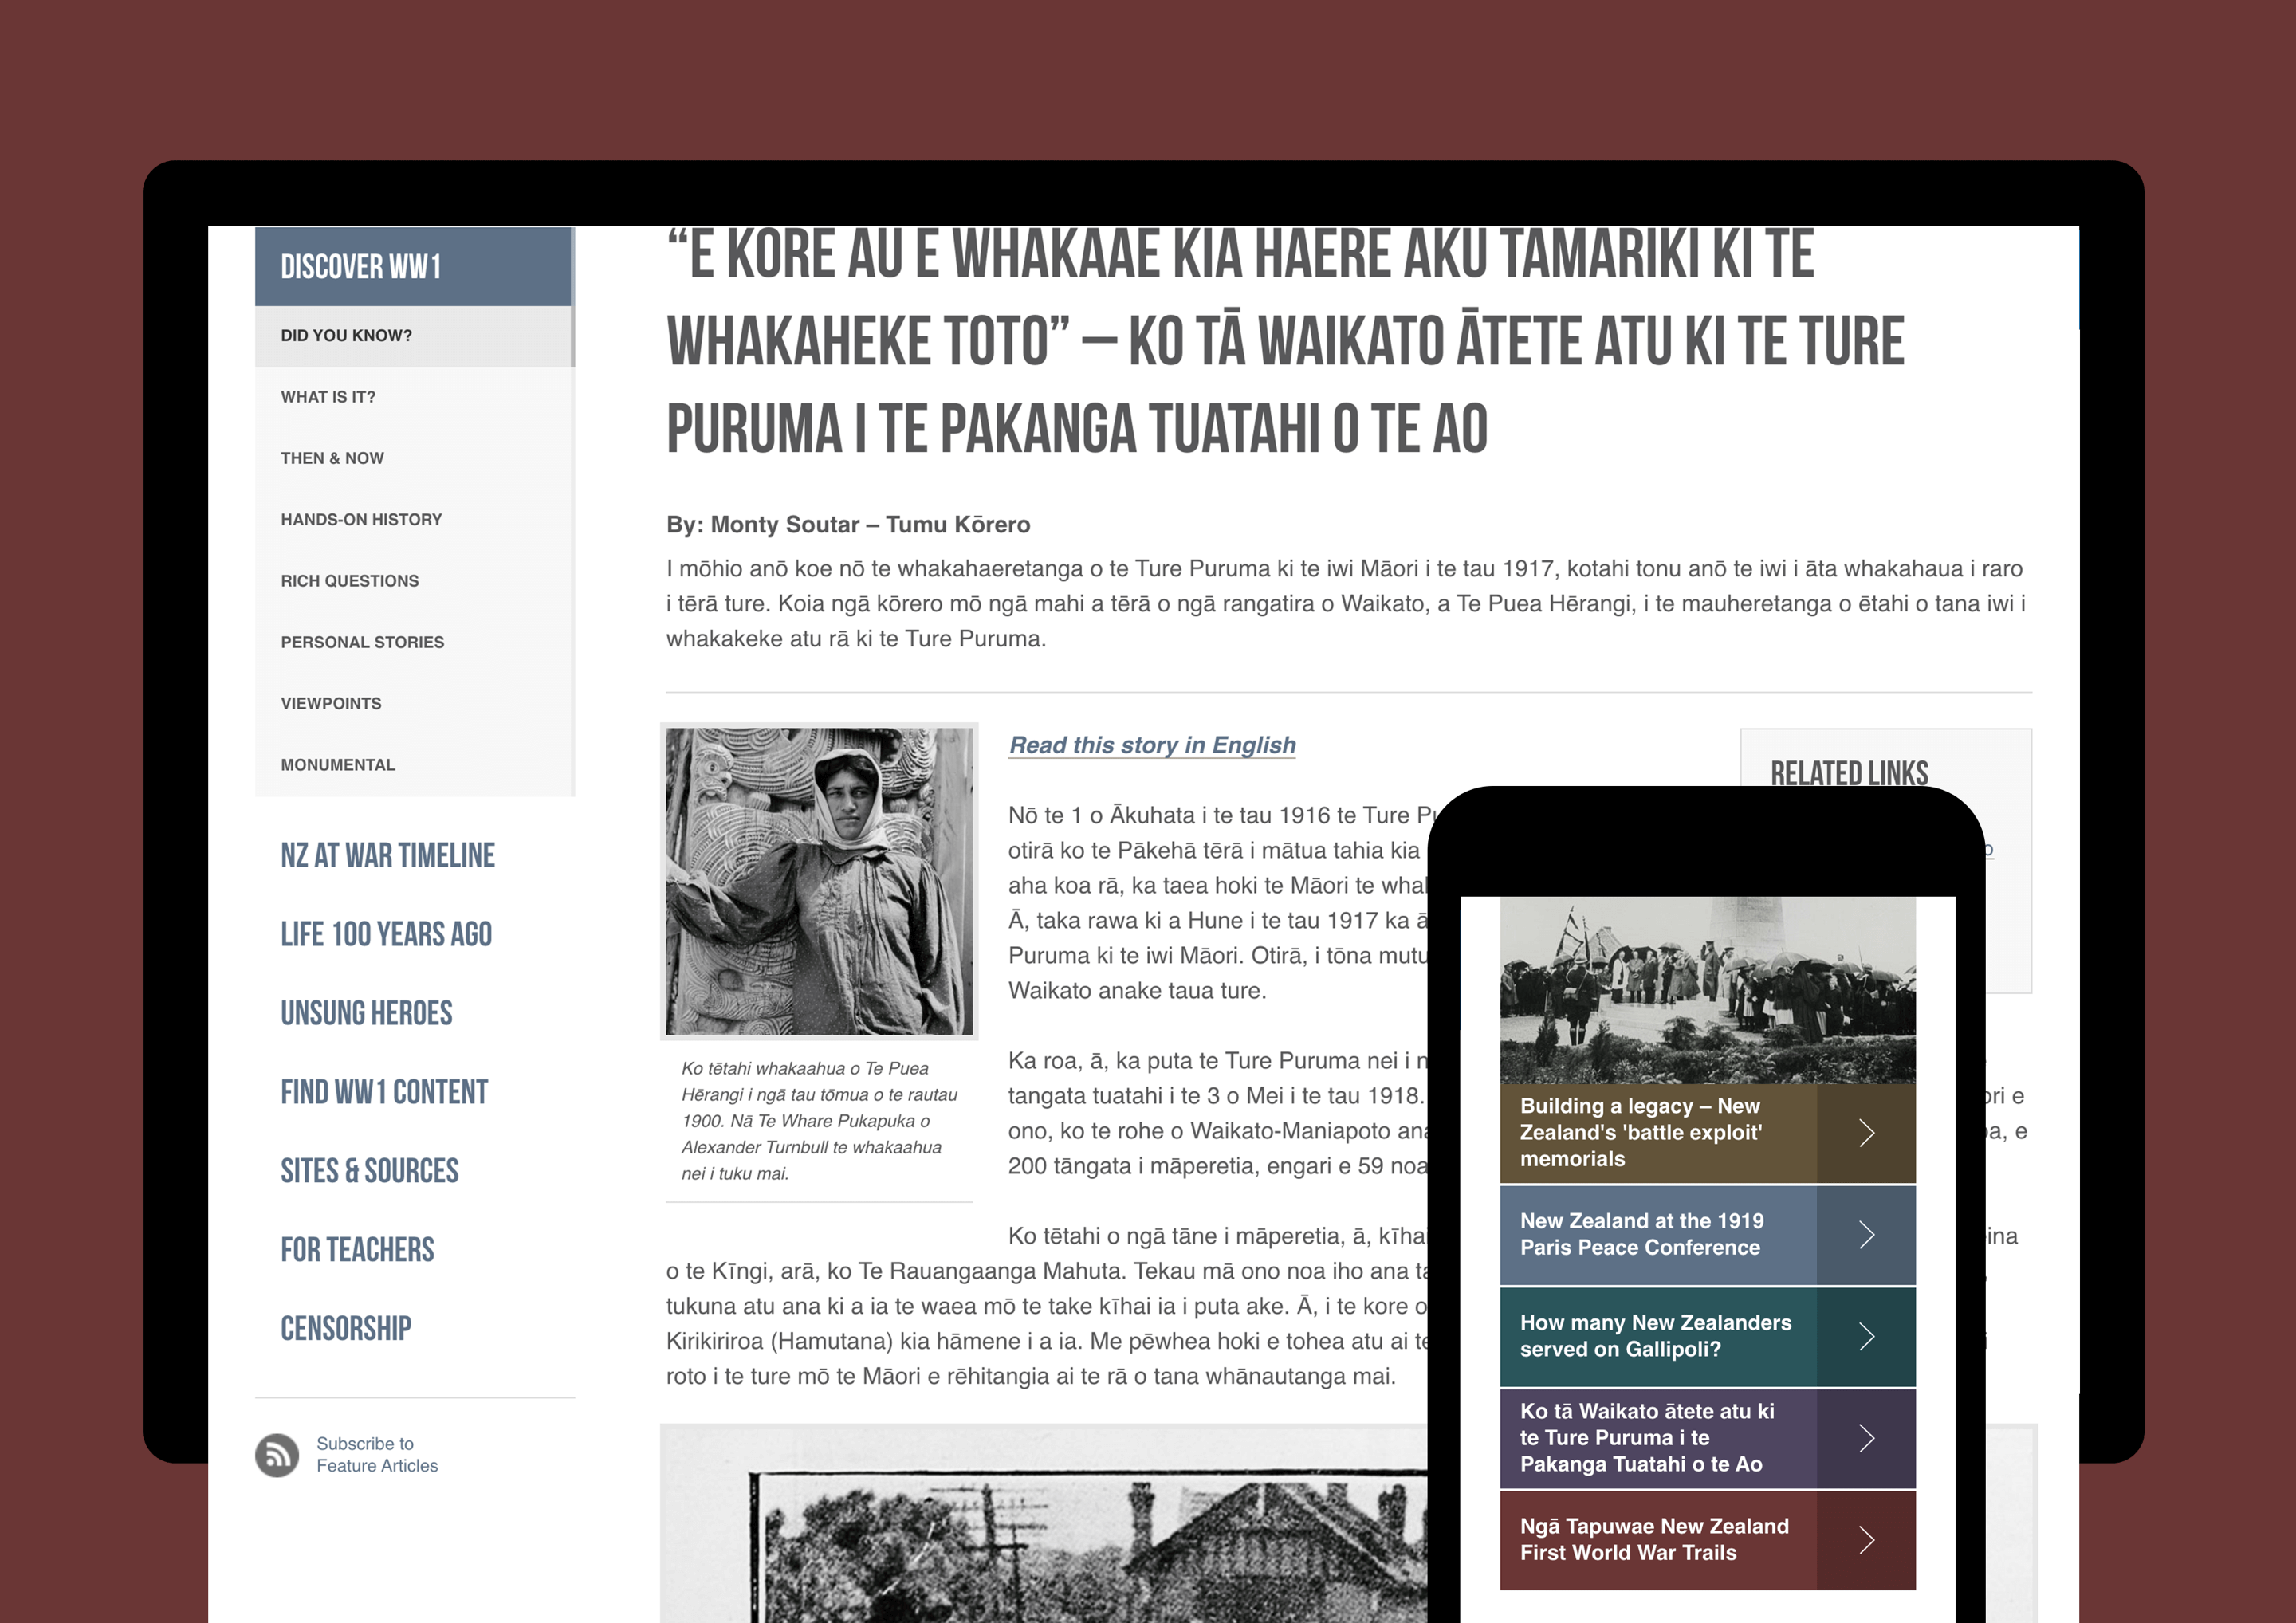 A mockup showing WWII website content on a tablet and a mobile device.